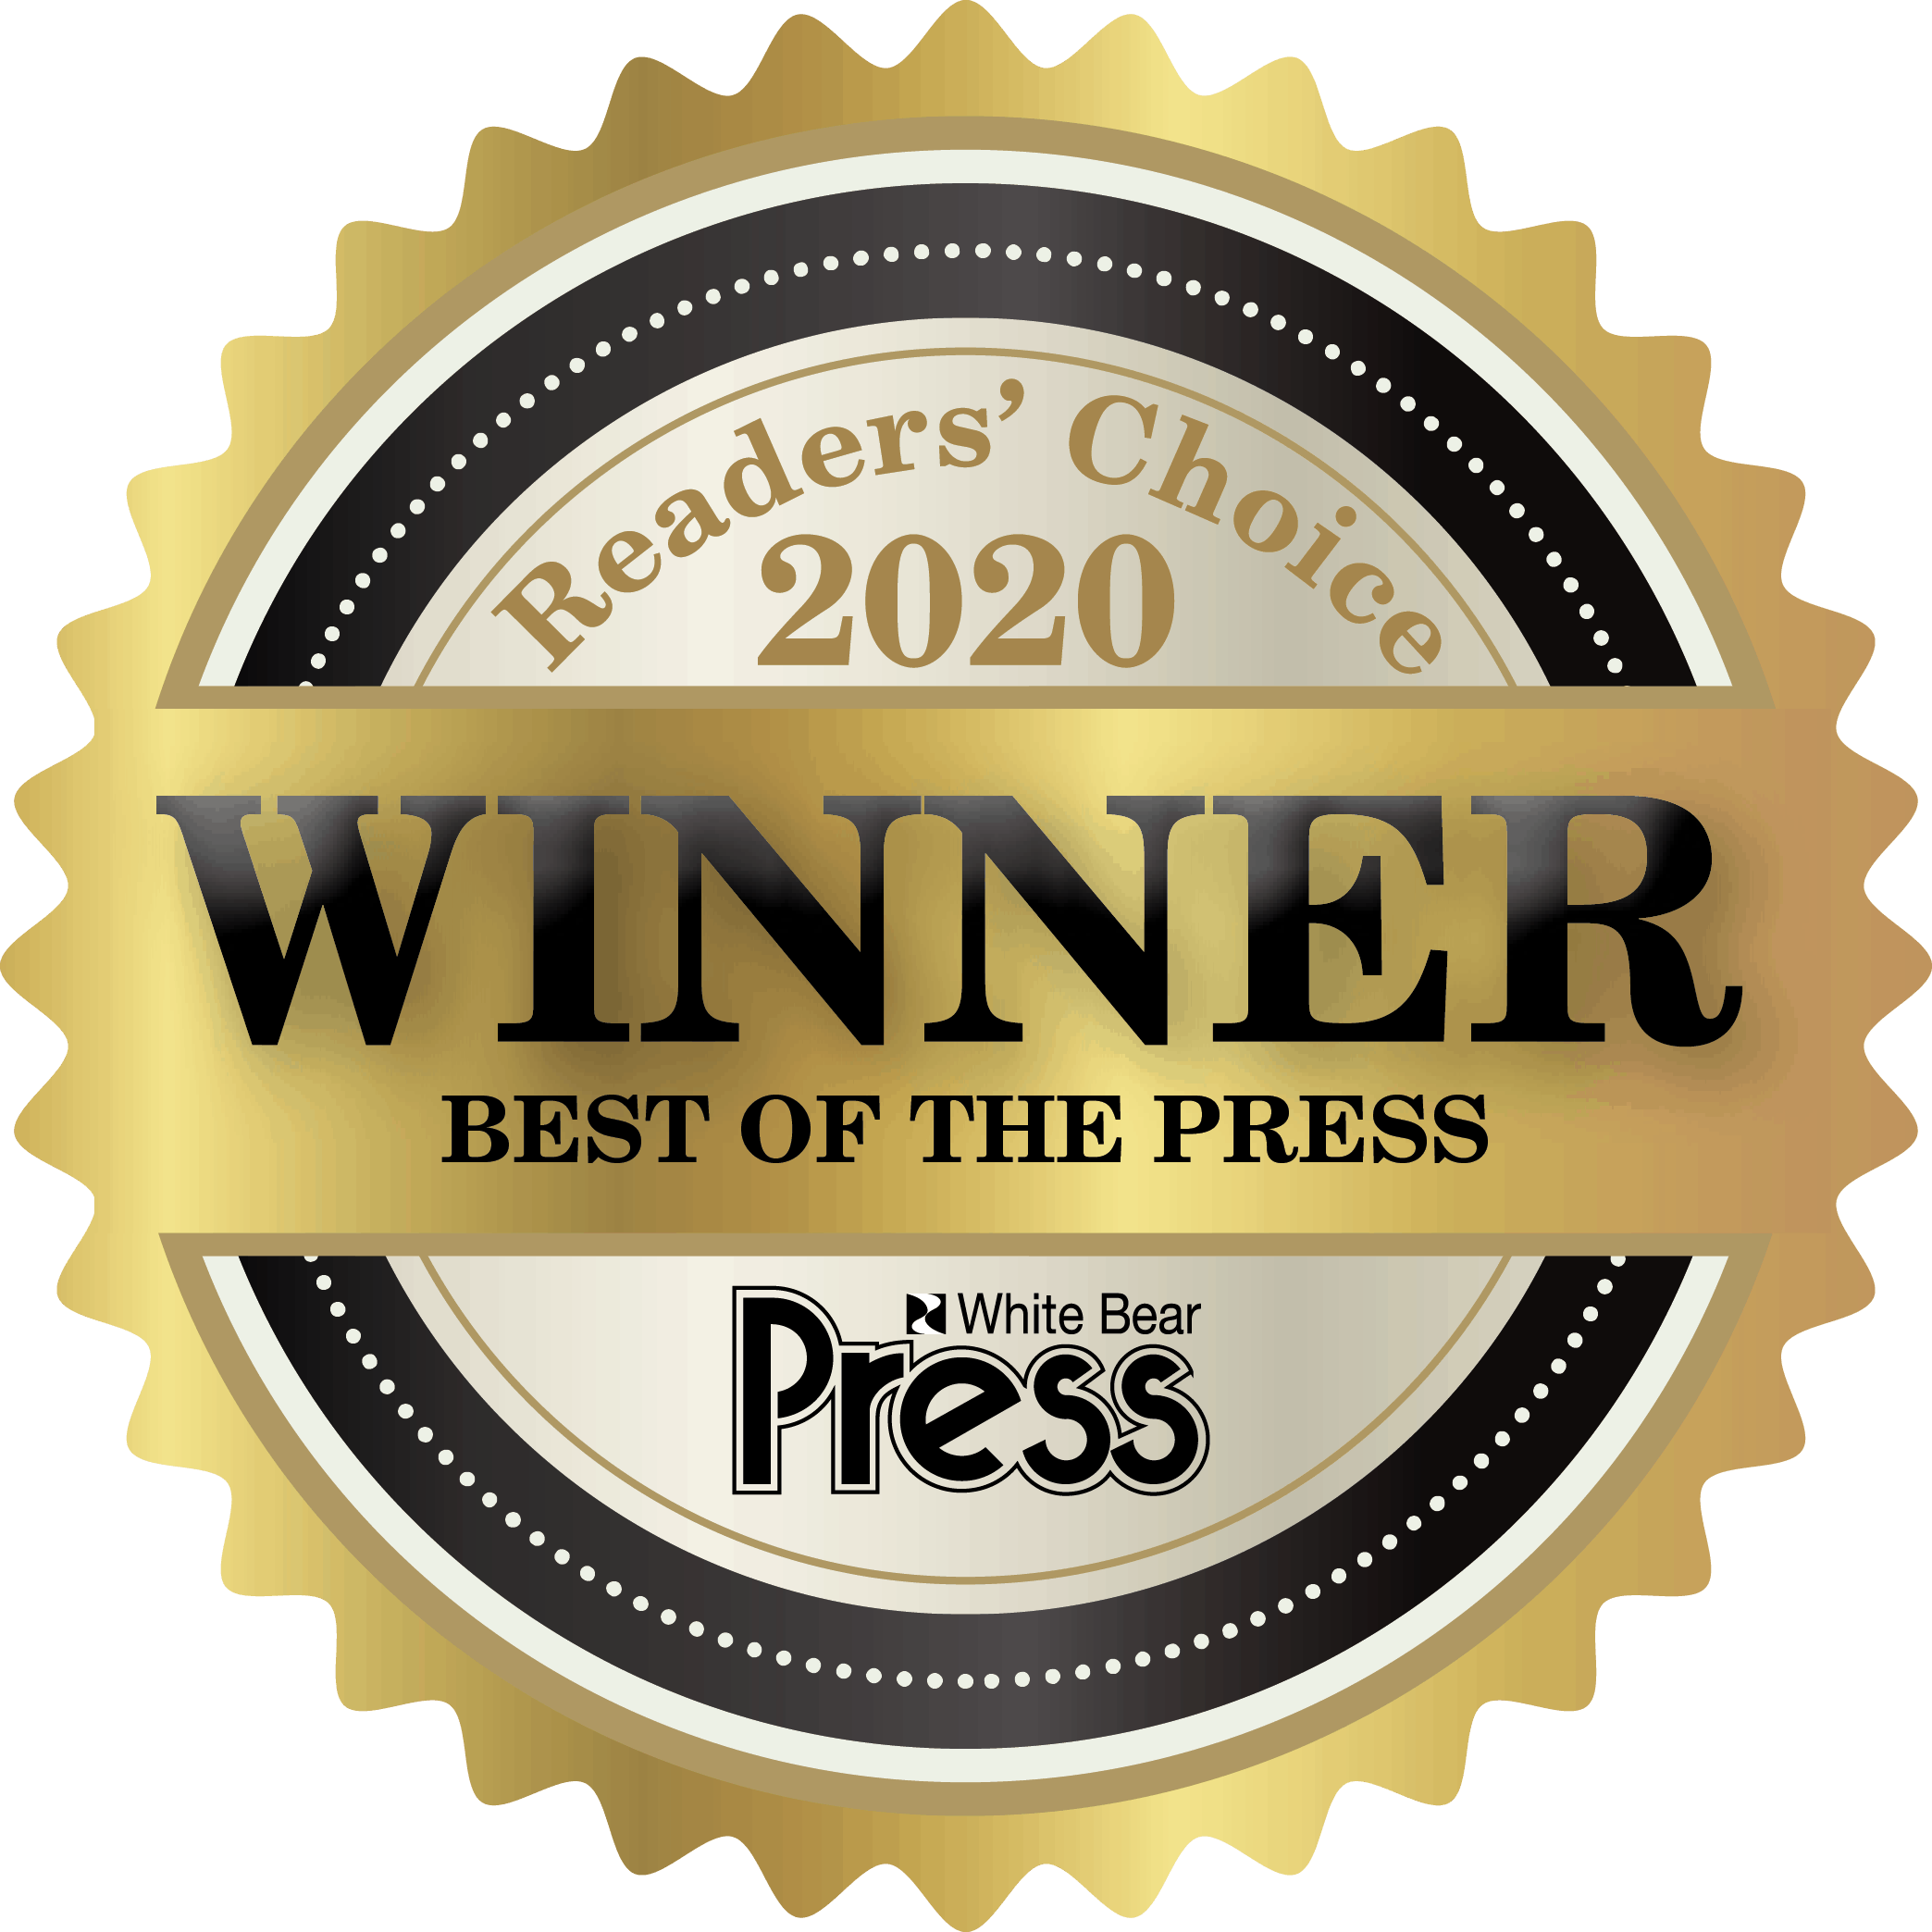 WINNER | BEST OF THE PRESS